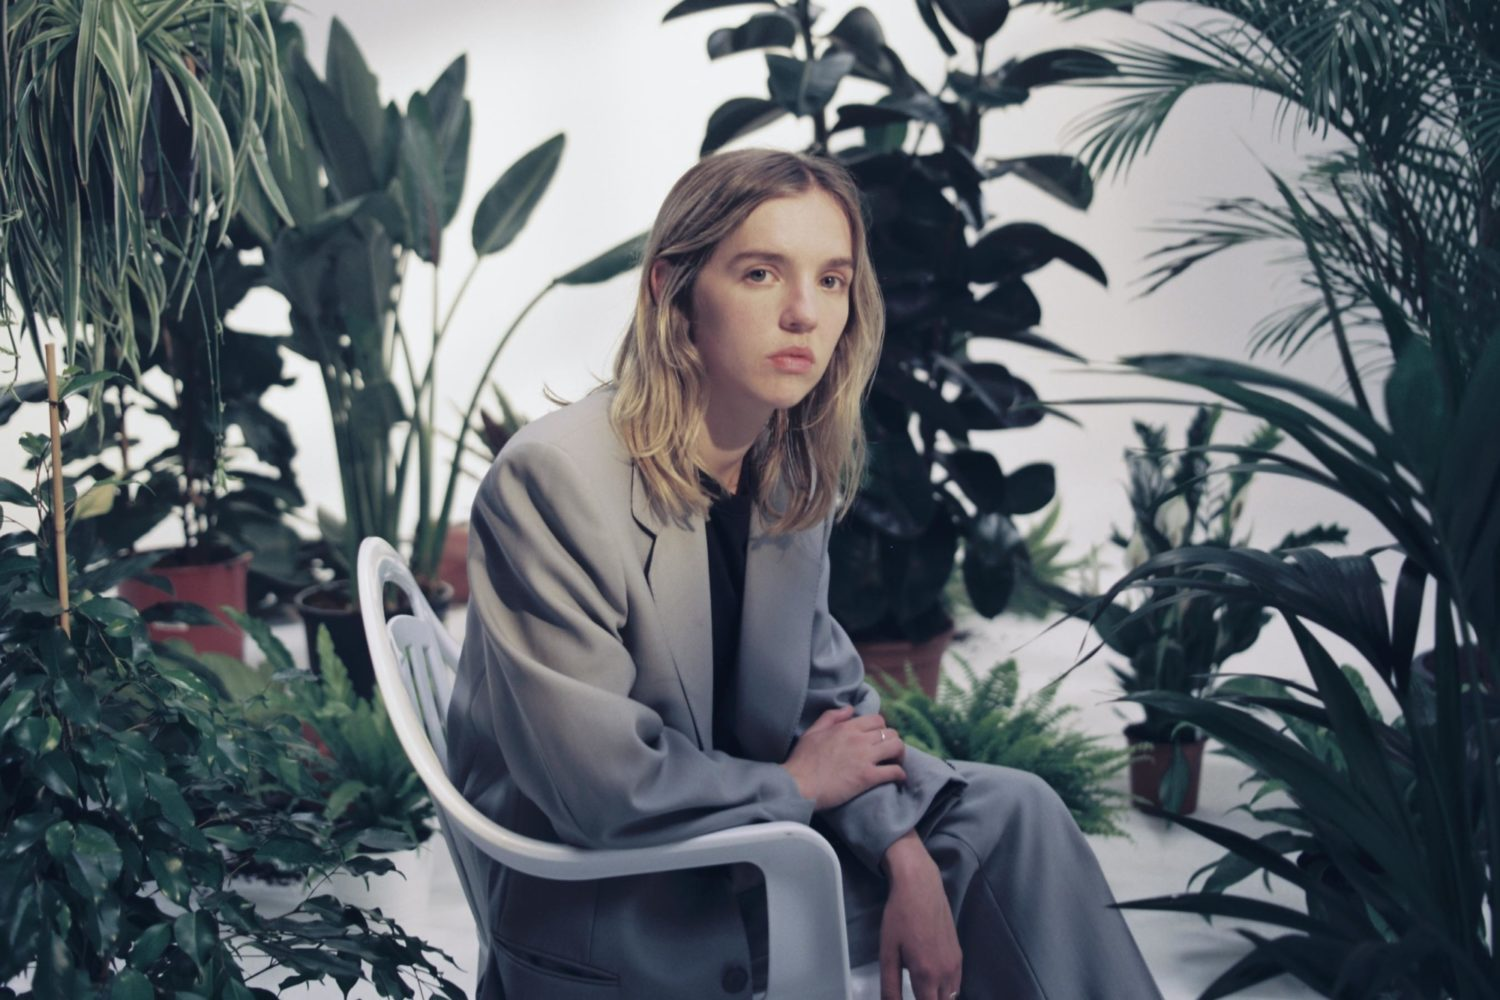 The Japanese House unveils dreamy new track 'Chewing Cotton Wool'